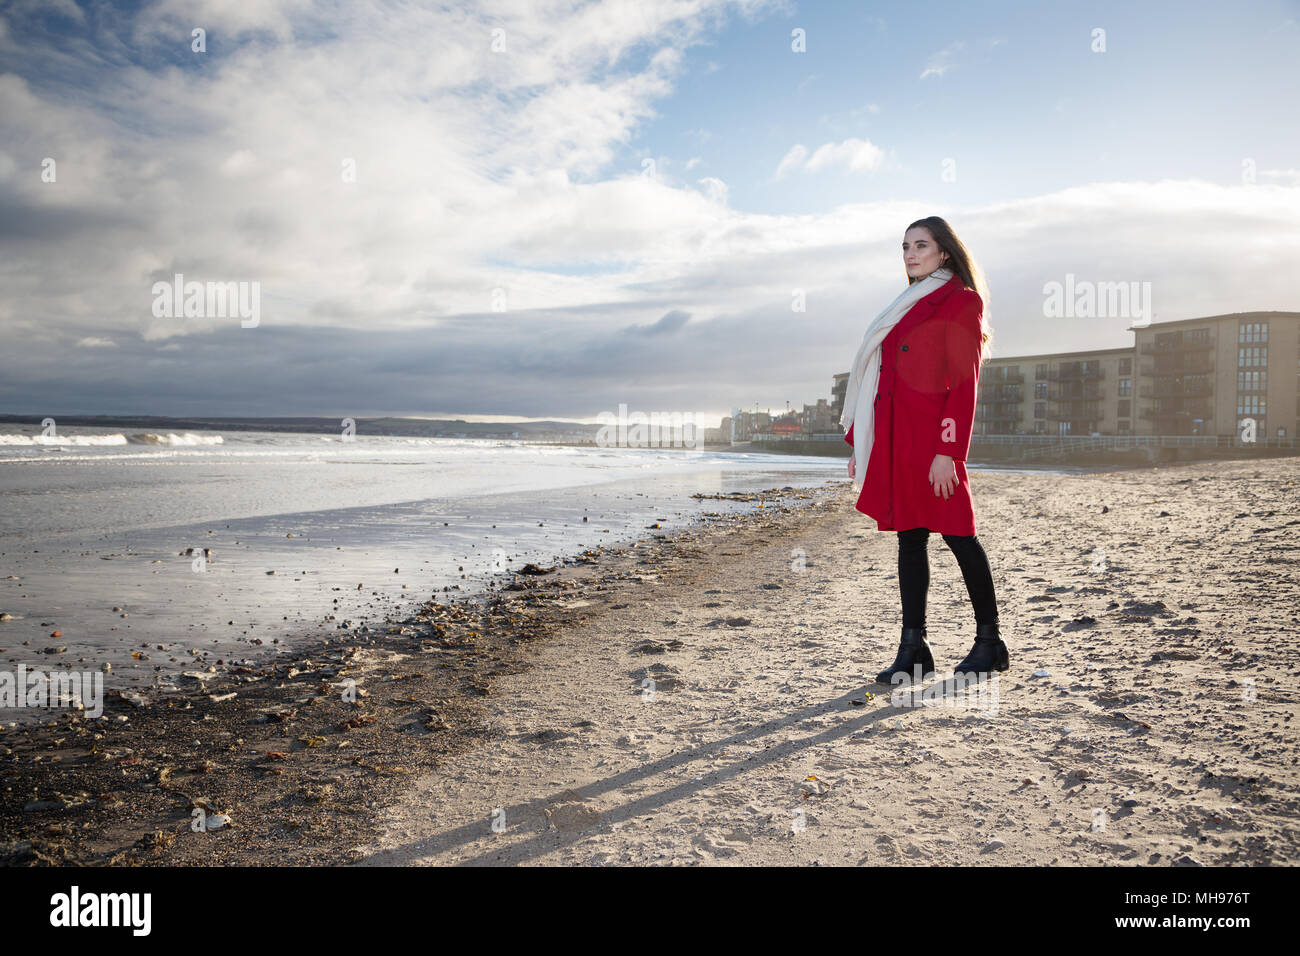 Woman at the beach, showing emotion and expression dealing with anxiety, grief, depression and mental health. - Stock Image